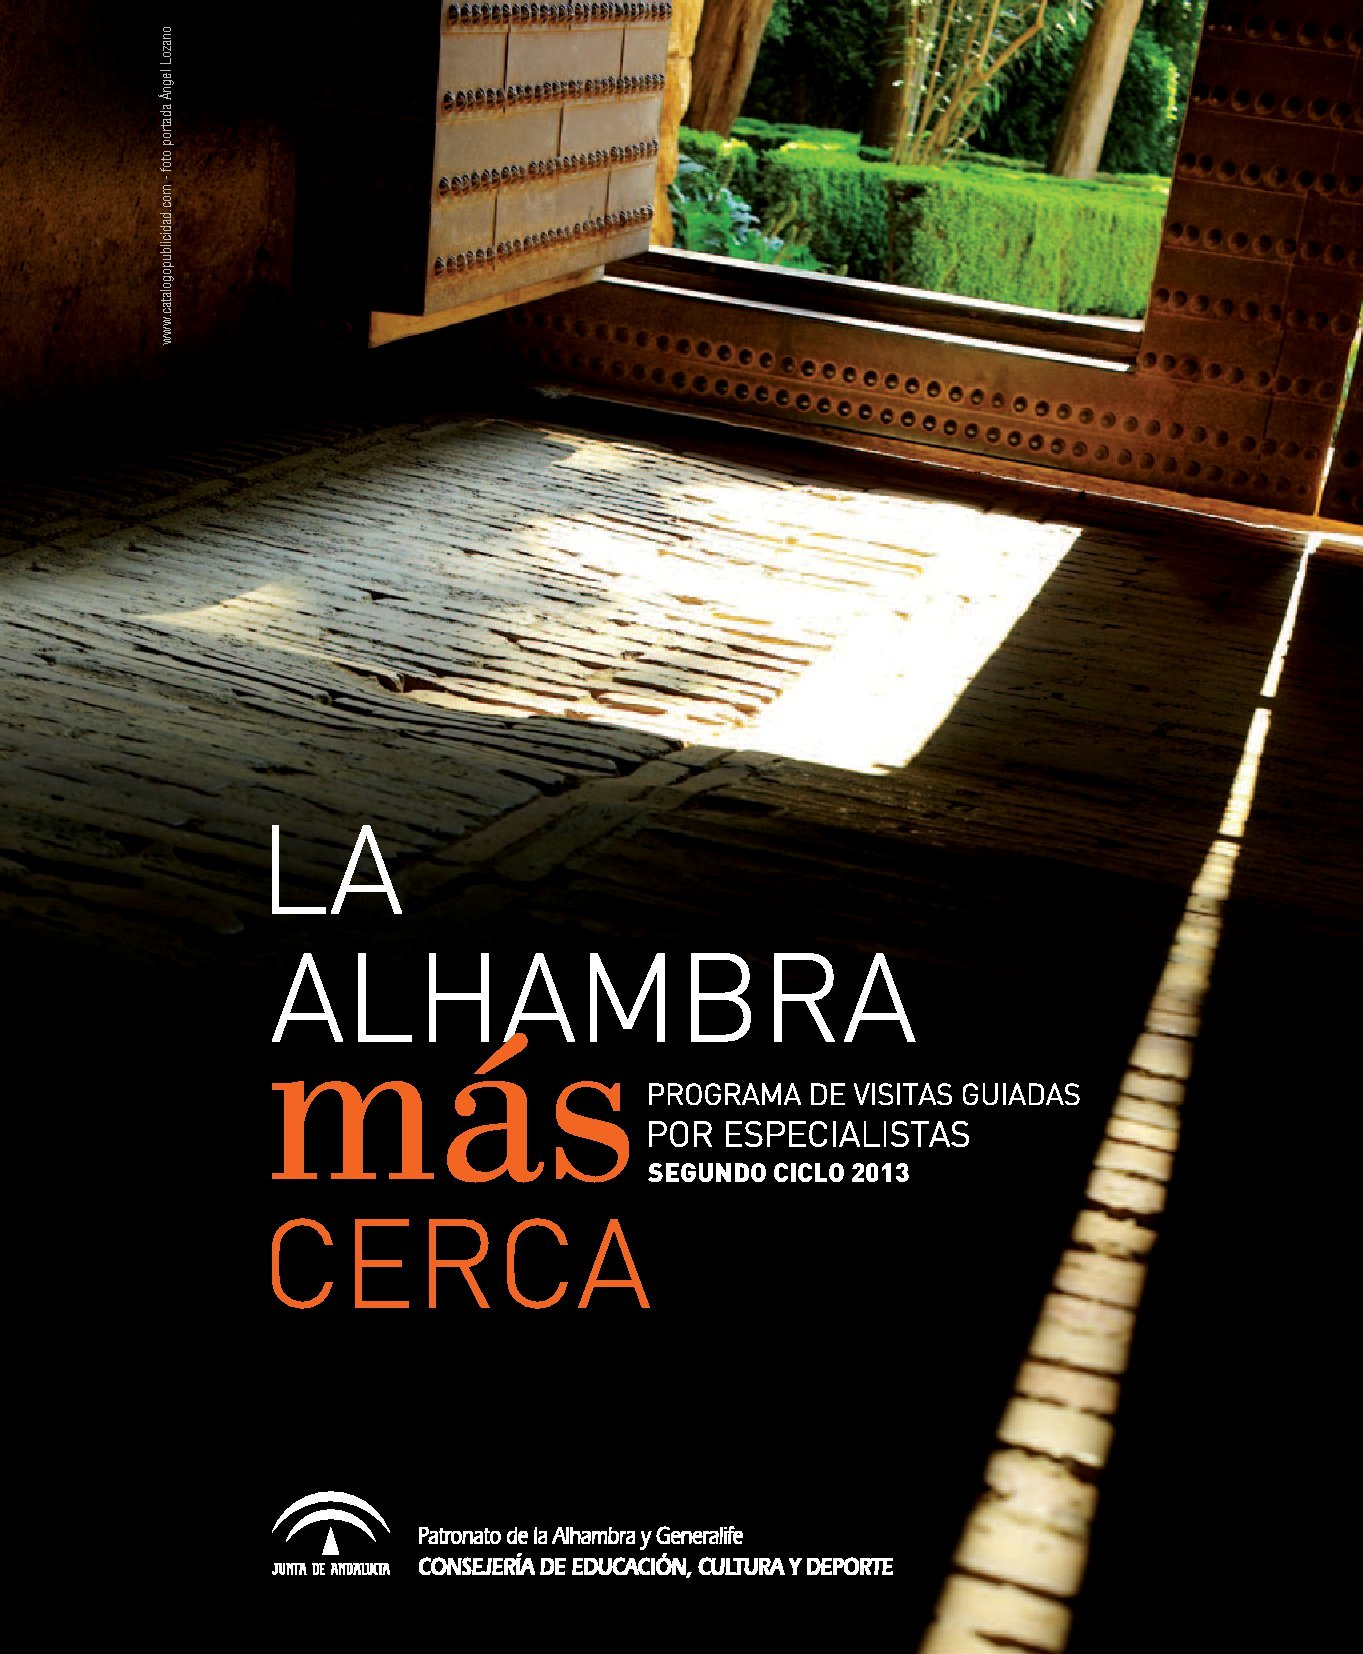 The Alhambra through the eyes of specialists